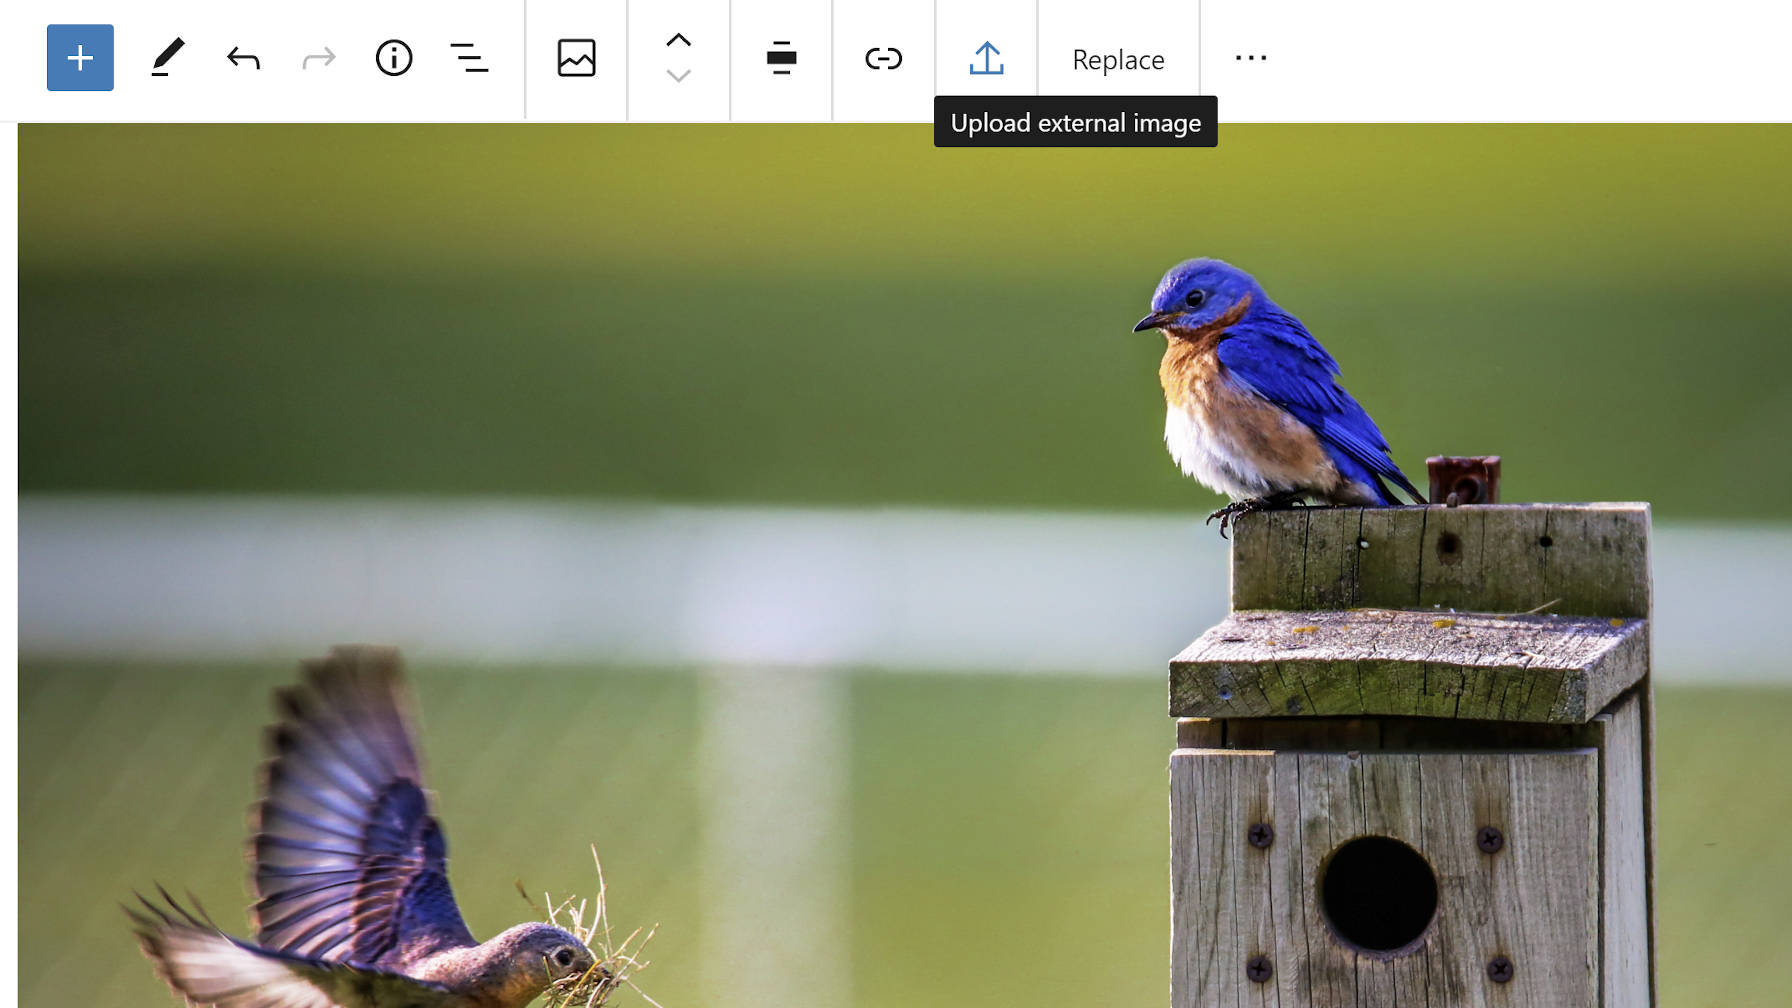 gutenberg-8-5-adds-single-gallery-image-editing-allows-image-uploads-from-external-sources-and-improves-drag-and-drop Gutenberg 8.5 Adds Single Gallery Image Editing, Allows Image Uploads From External Sources, and Improves Drag and Drop